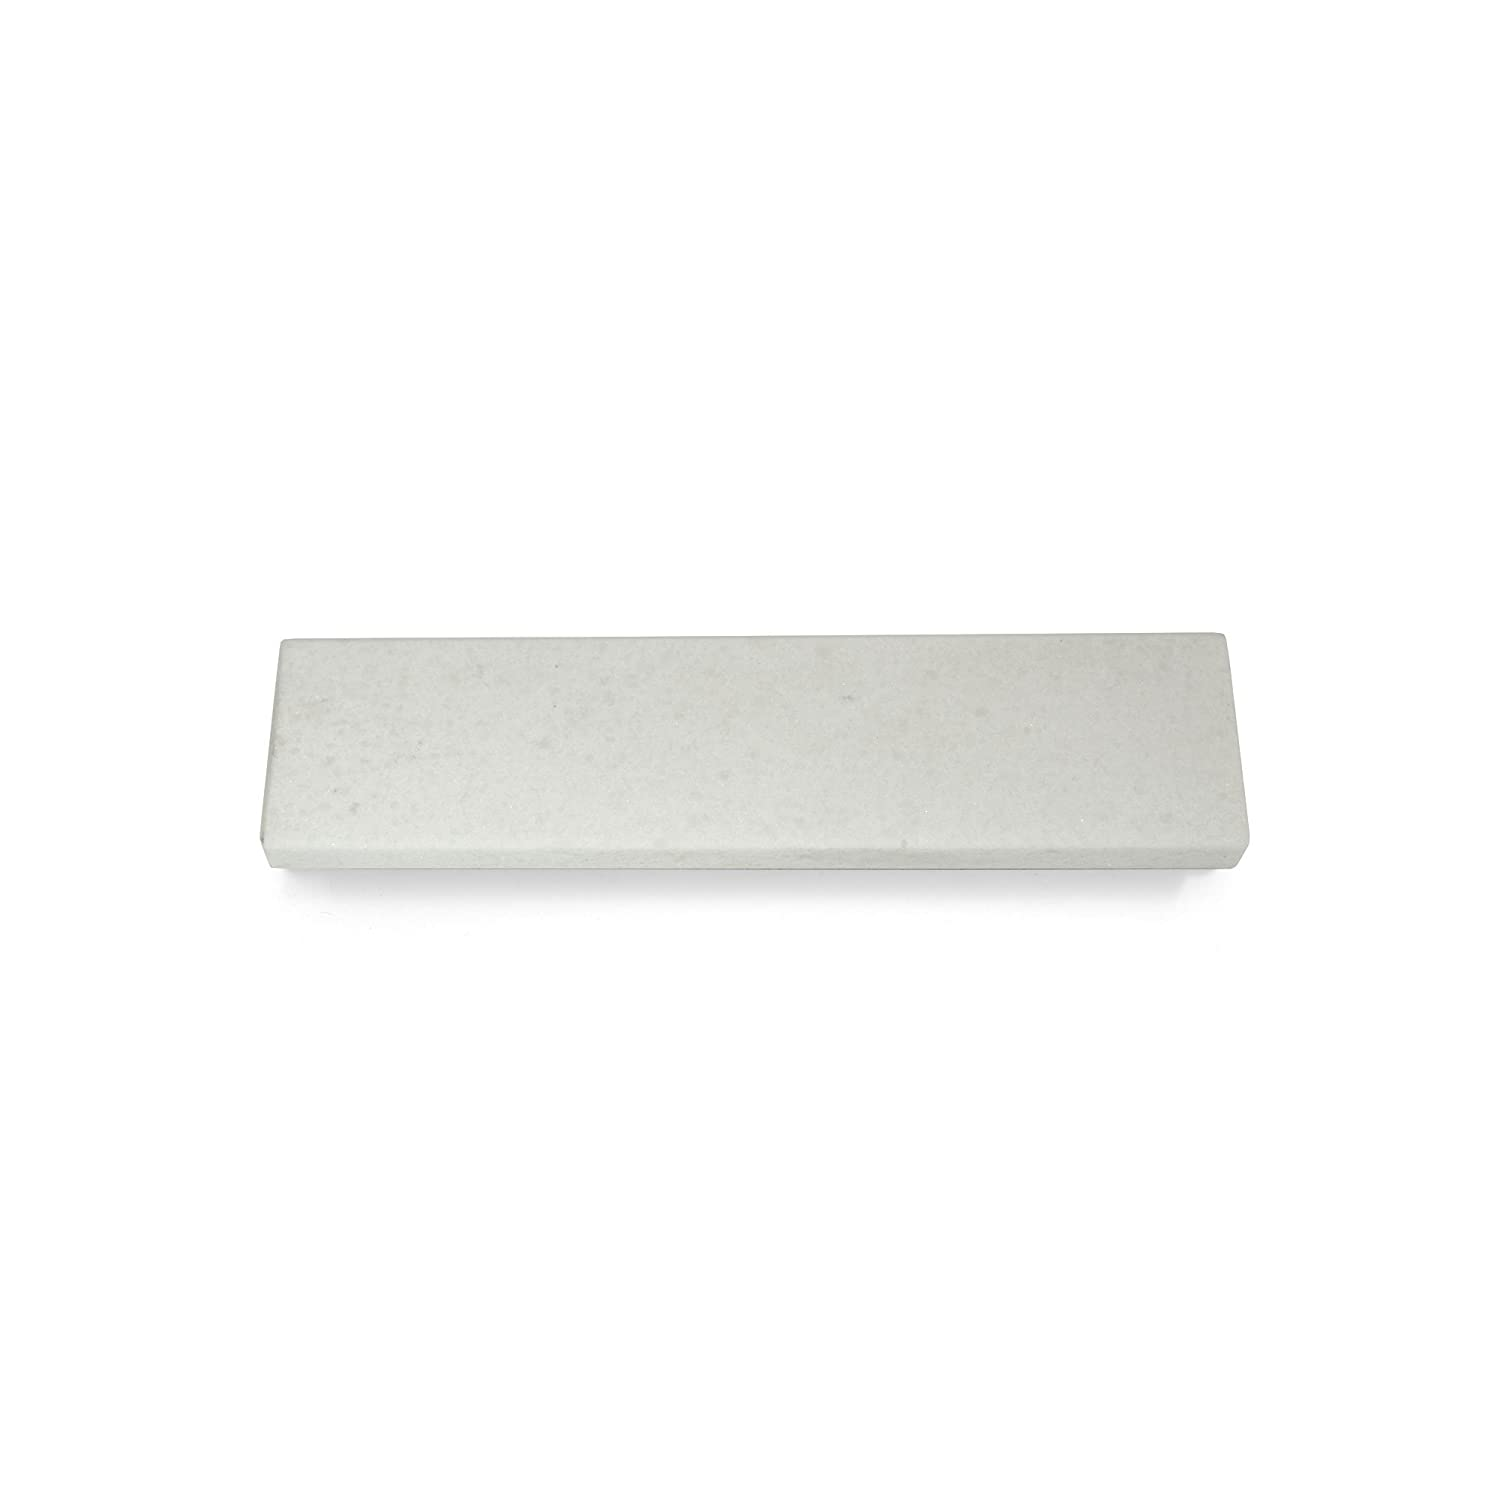 Shapton Pro 4 x 1 x 0.25 Sharpening Stone for KME 120 grit Kuromaku